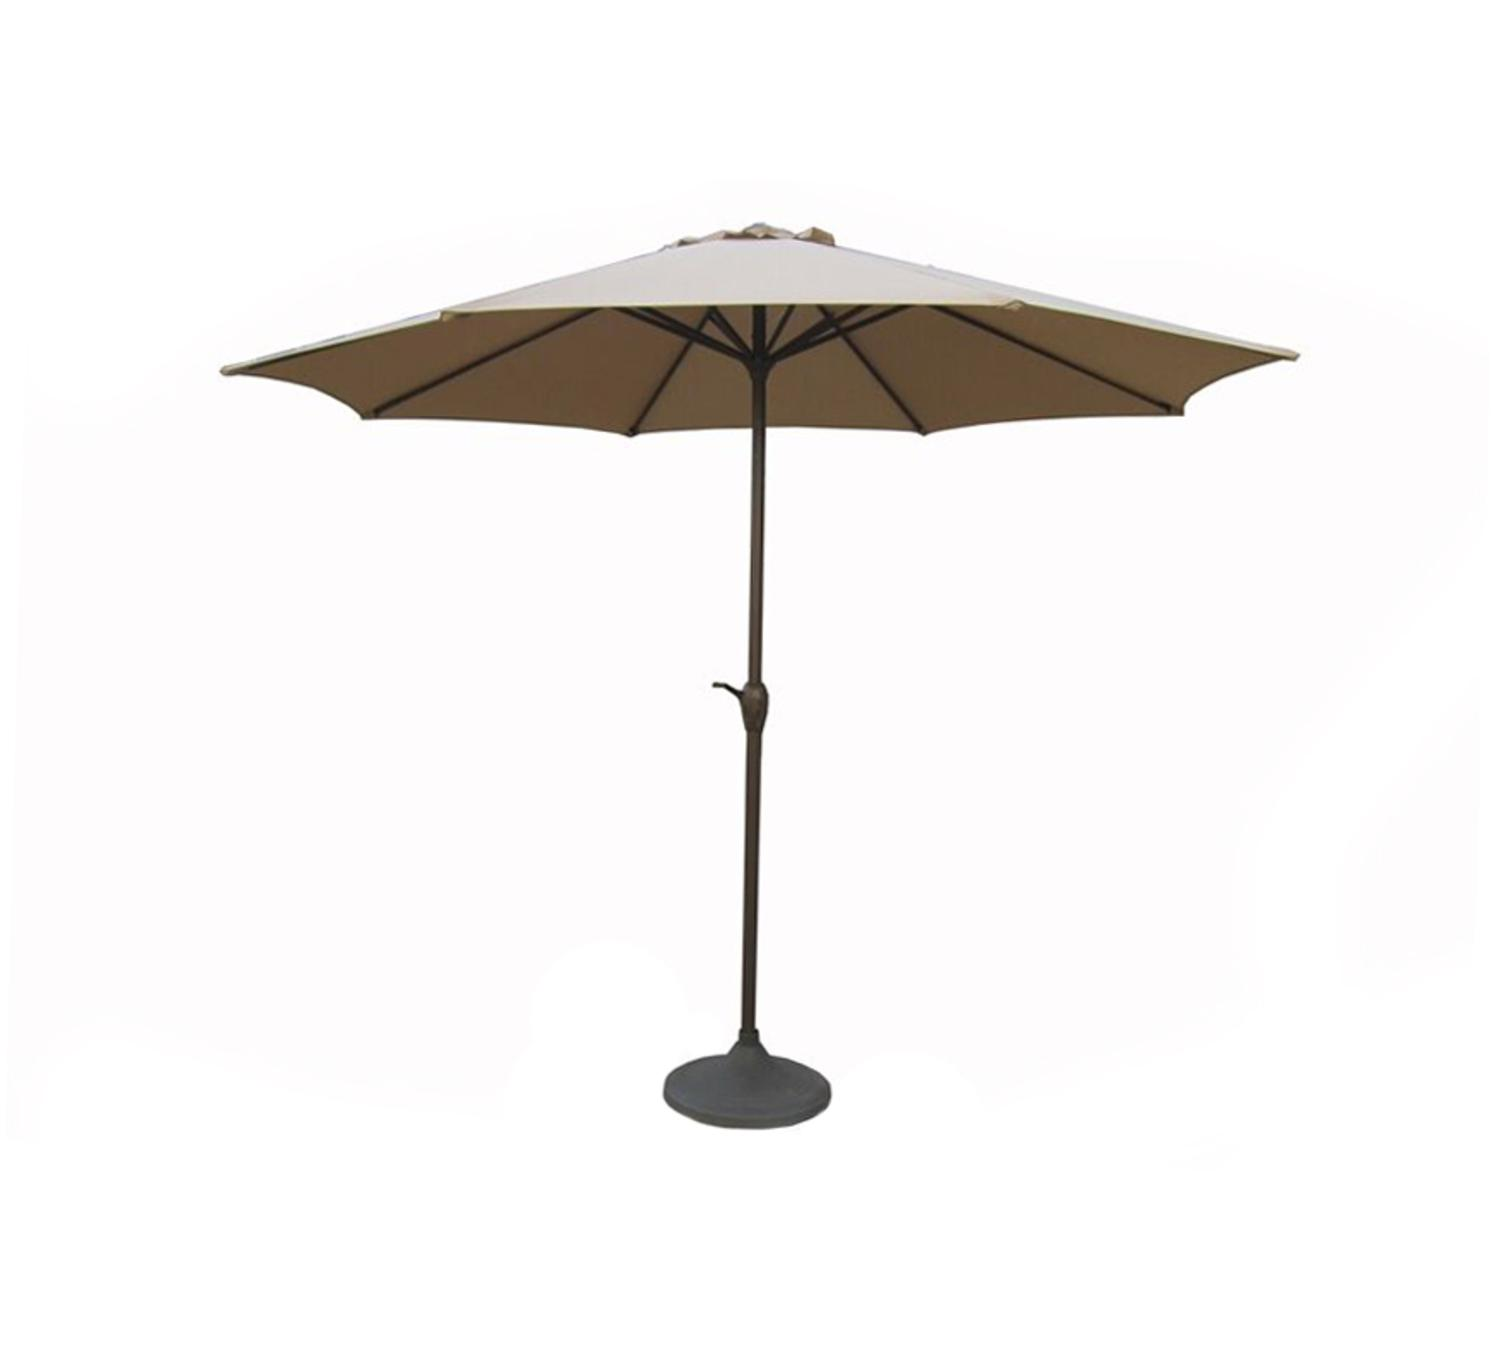 9' Outdoor Patio Market Umbrella with Hand Crank and Tilt Beige and Black by LB International